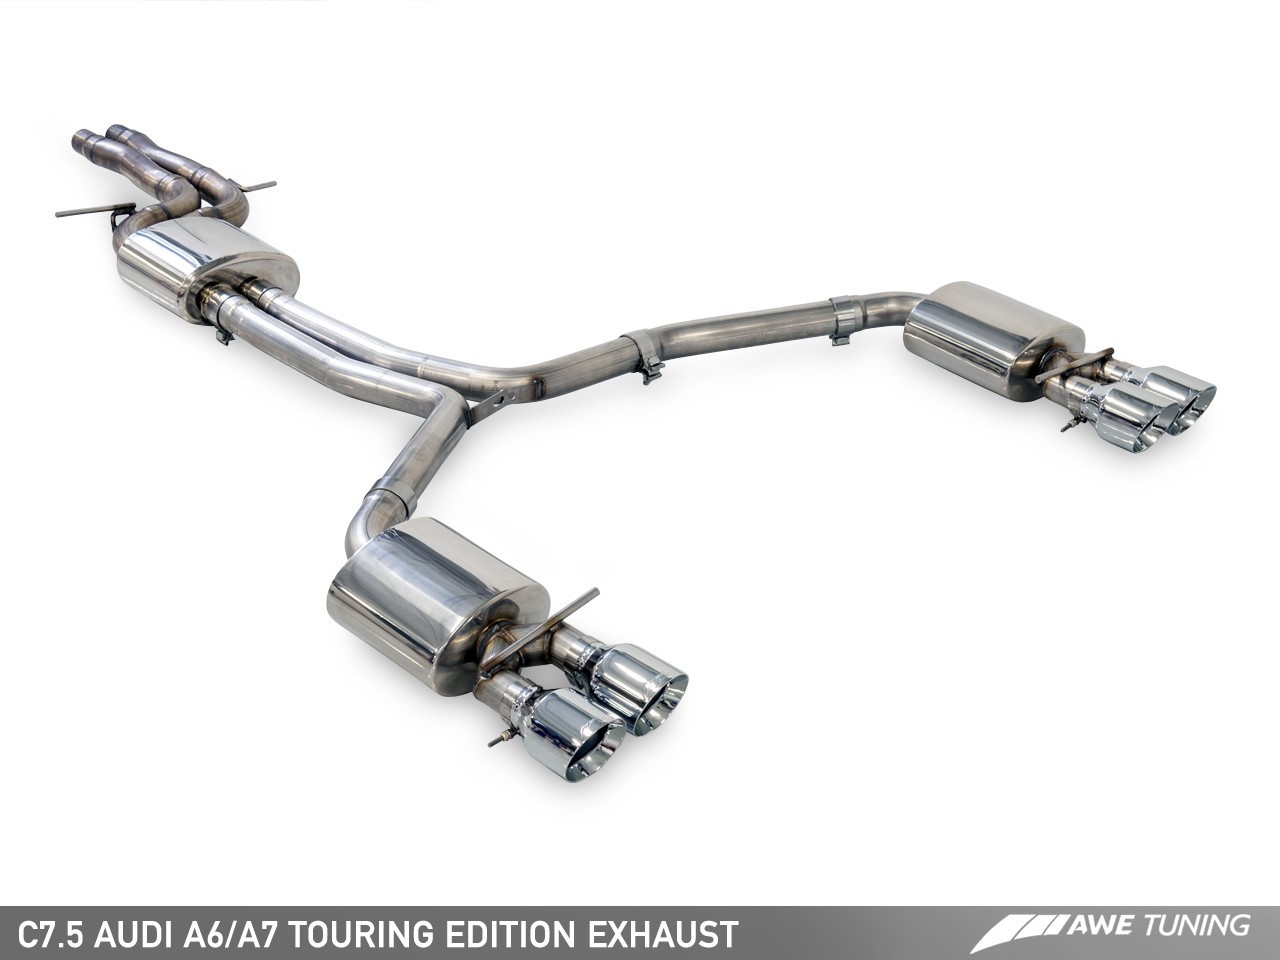 awe tuning audi a7 c7 5 3 0tfsi touring edition exhaust system